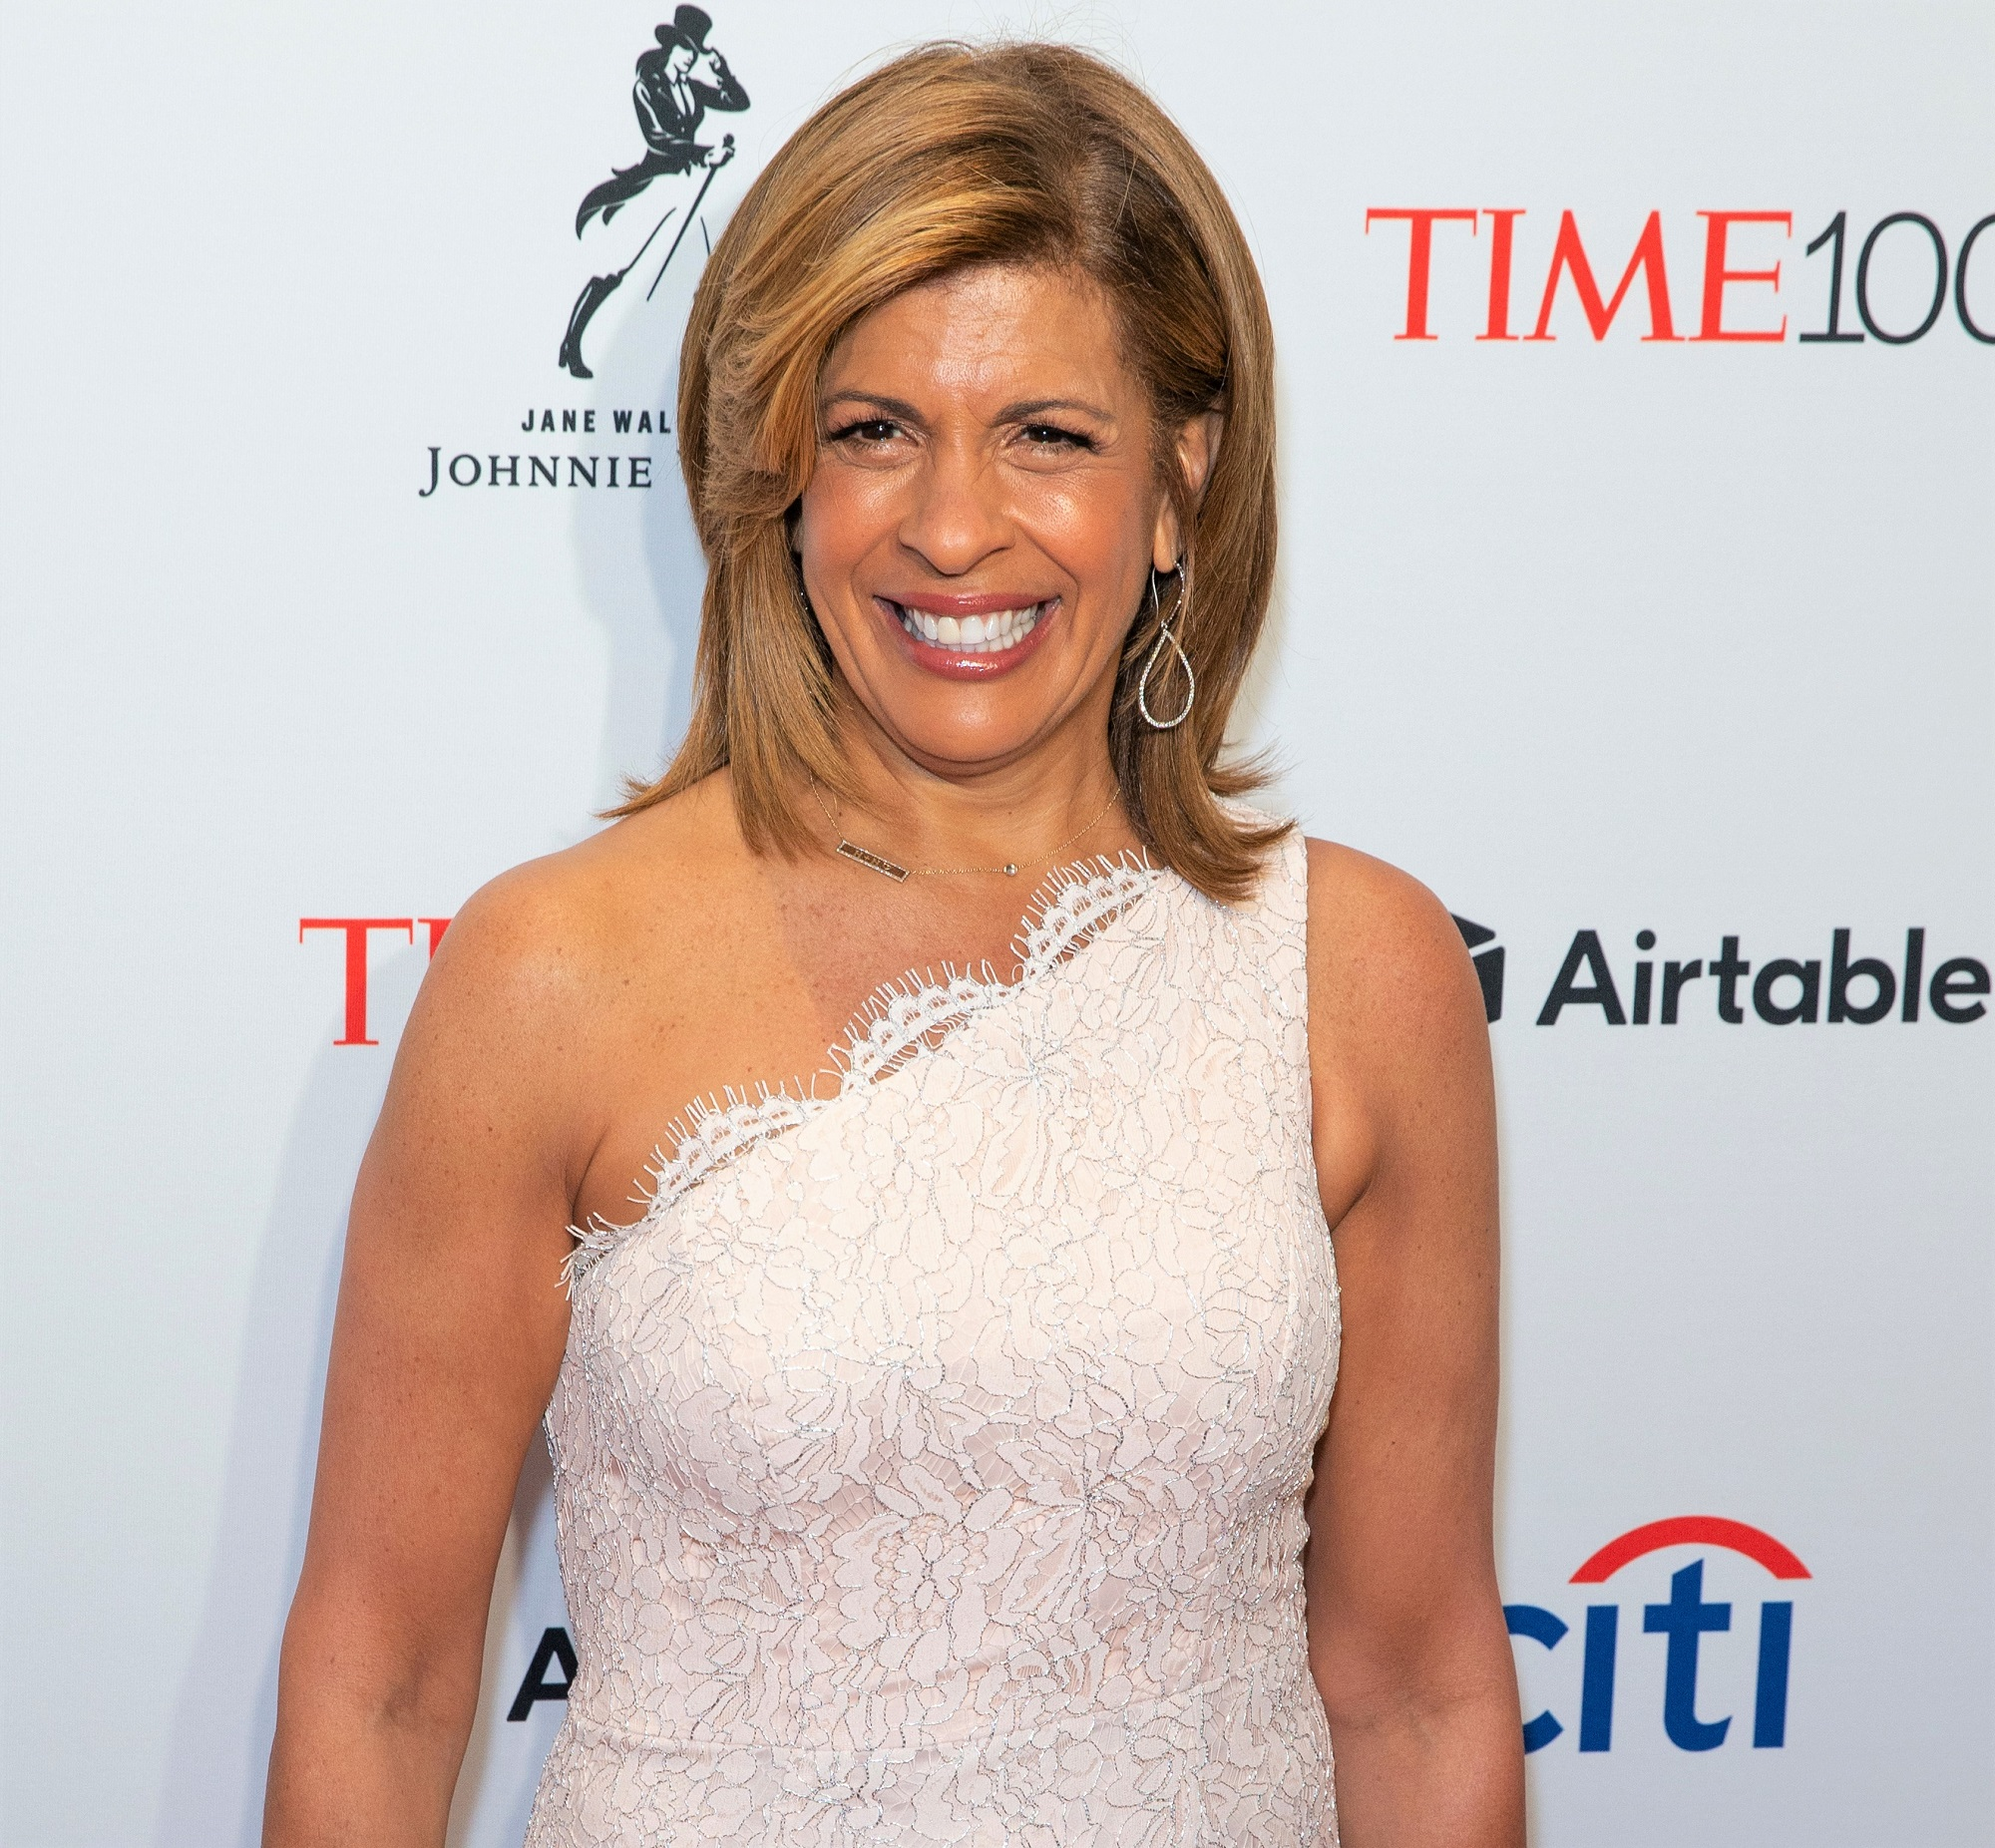 Hoda Kotb Announces Return to Today as She Urges Women to Take Full Maternity Leave If Possible